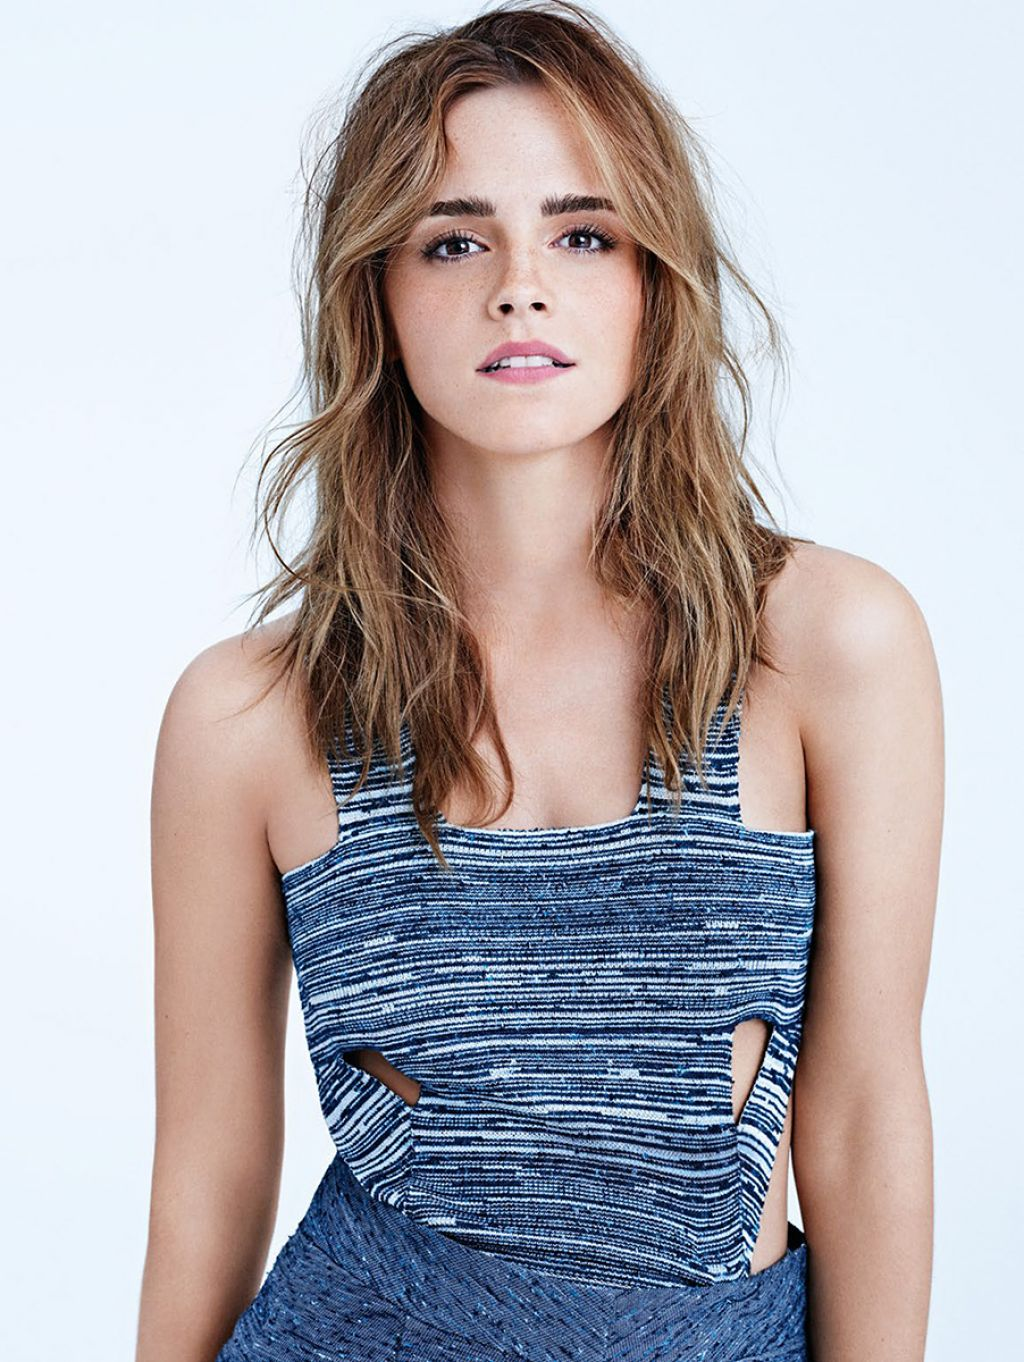 emma-watson-photoshoot-for-elle-magazine-uk-december-2014_10